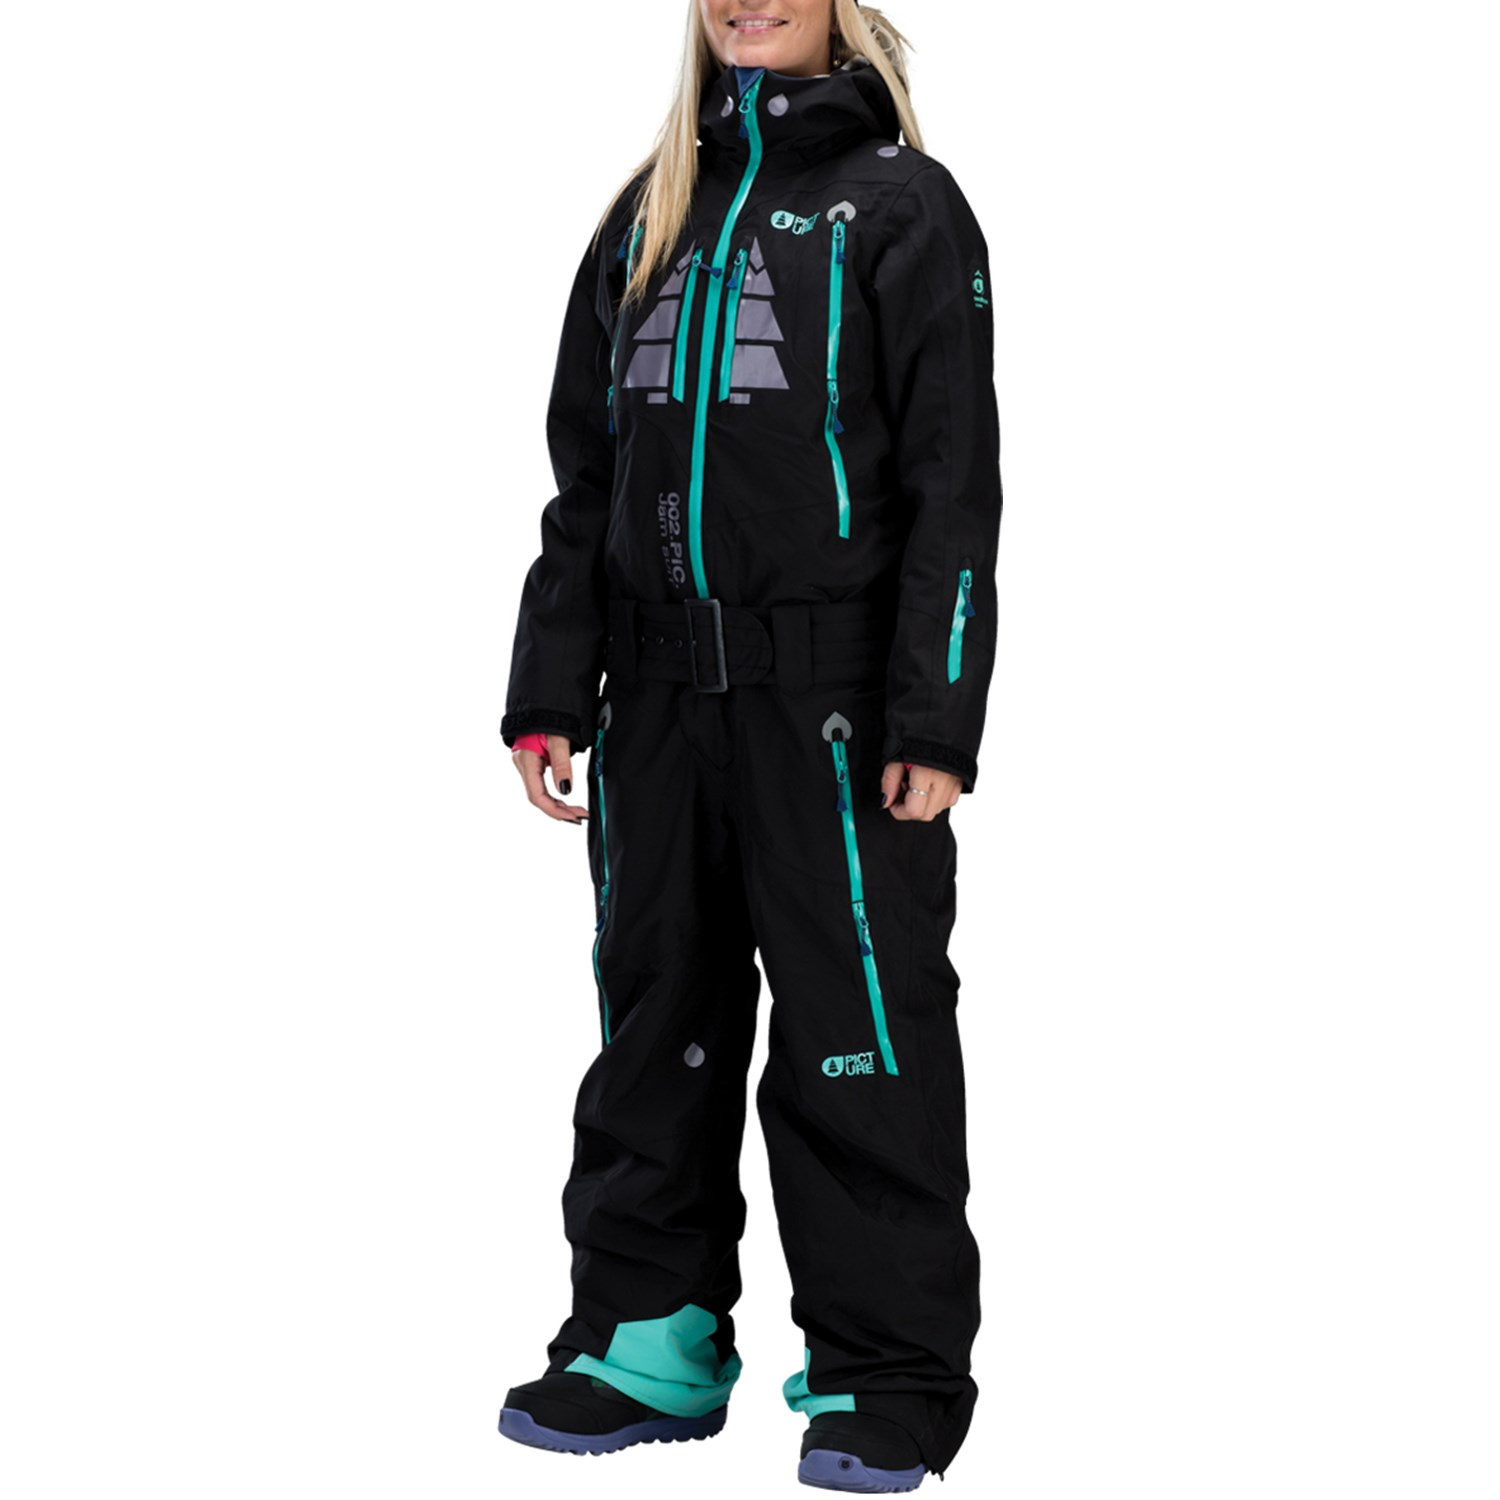 Womens Snow Suit One Piece >> Picture Organic Jam One Piece Women S Evo